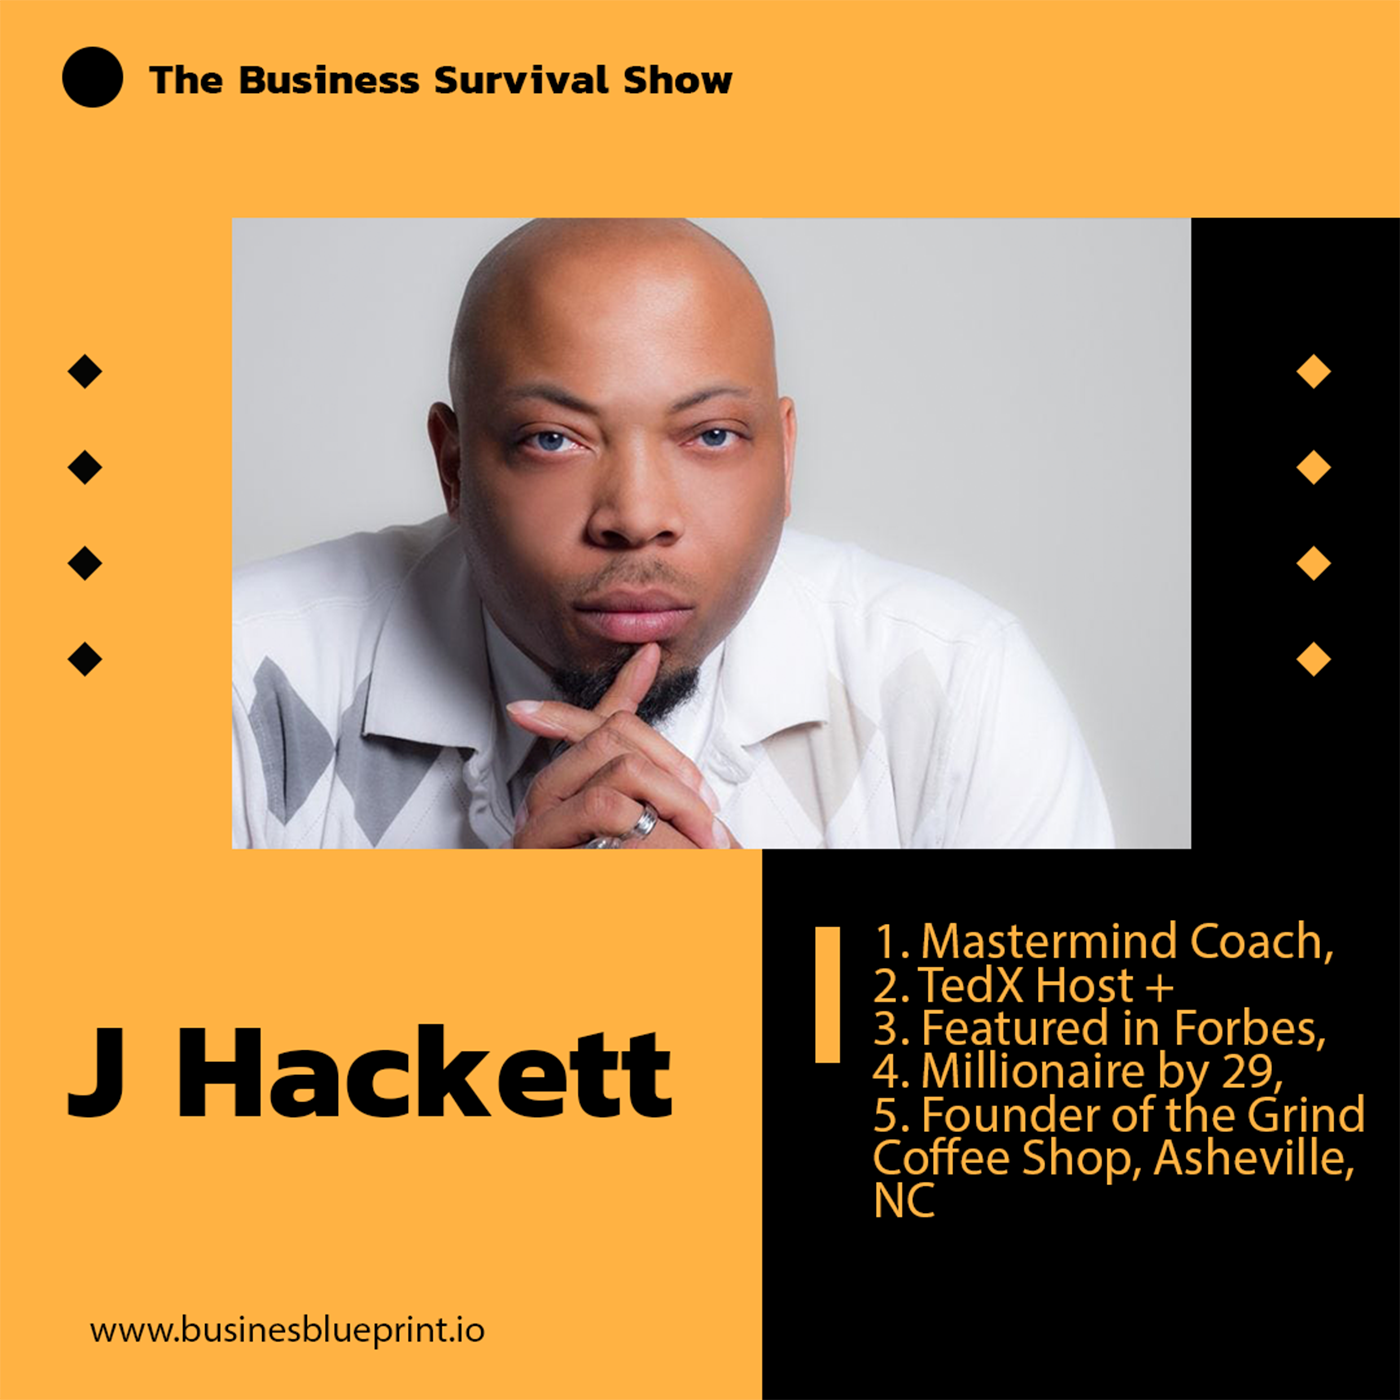 Entrepreneur & Business Owner, J Hackett talks about embracing fear, taking action and business revival